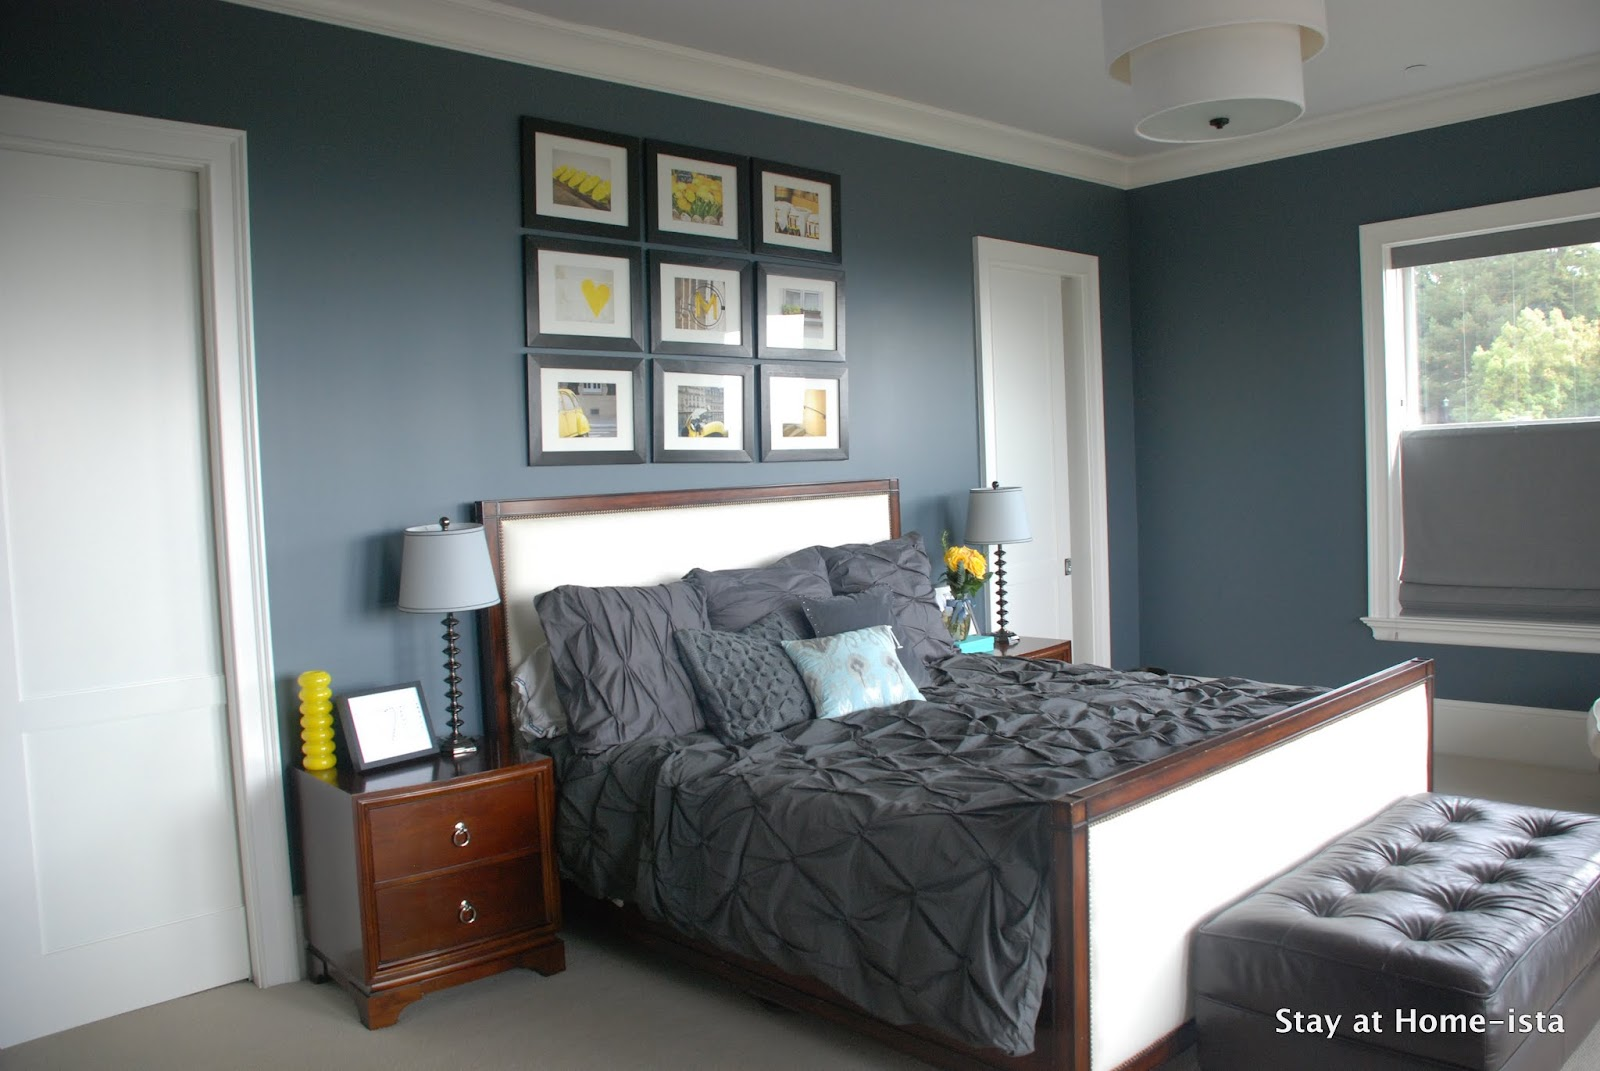 Master Bedroom Updates stay at home-ista: grey and yellow master bedroom updates